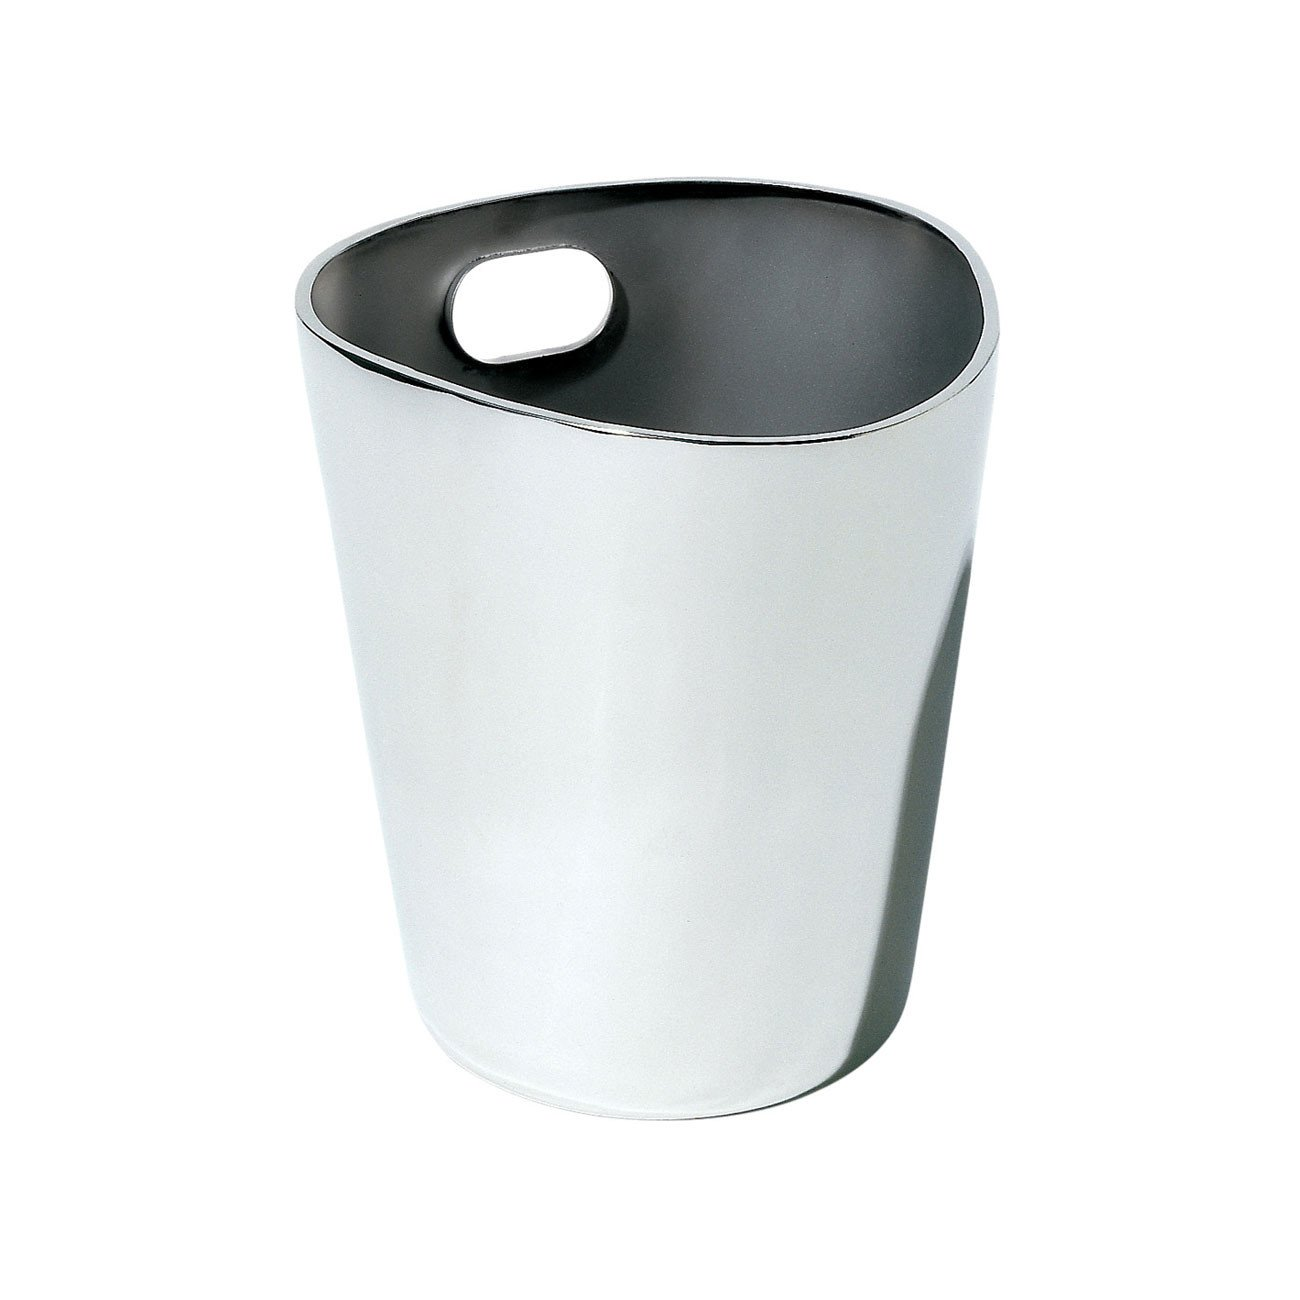 Alessi jasper morrison ice bucket mirror polished